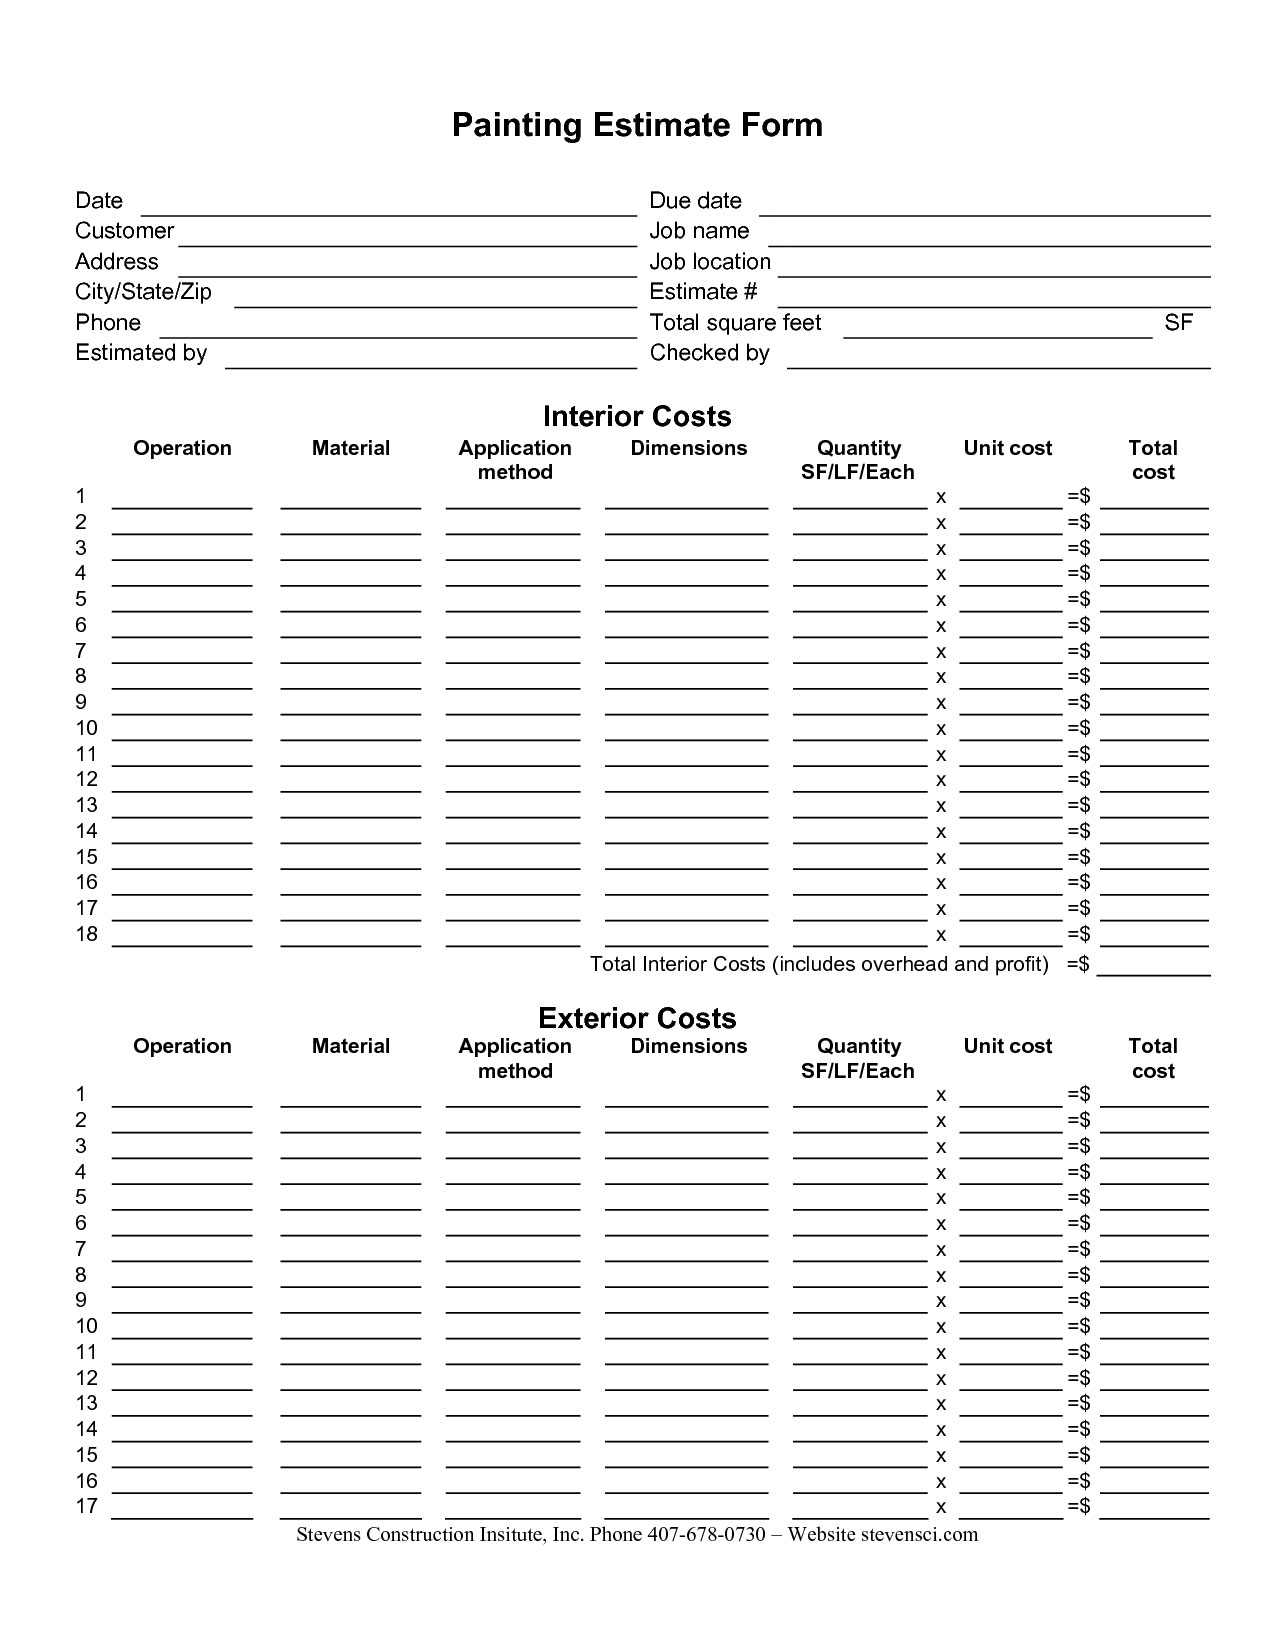 Painting Estimate Form Sample | Painting Estimate Sheet Templates Within Construction Estimating Forms Template